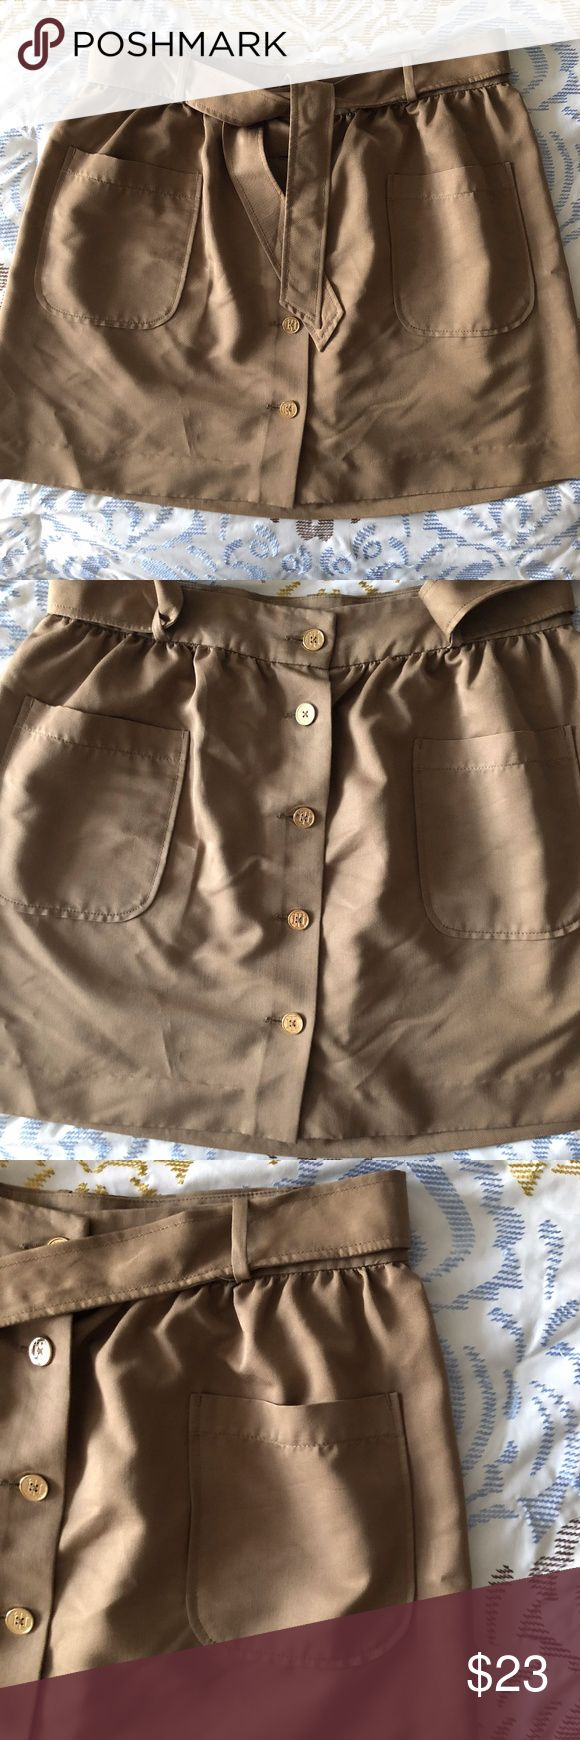 Tommy Hilfiger Button Front Tan Skirt Size 12 Tommy Hilfiger tan button up skirt in size 12. Gold buttons down the front with a belt and two front pockets. Lightweight cotton material, great for fall or spring! In excellent condition, no flaws. Tommy Hilfiger Skirts Mini